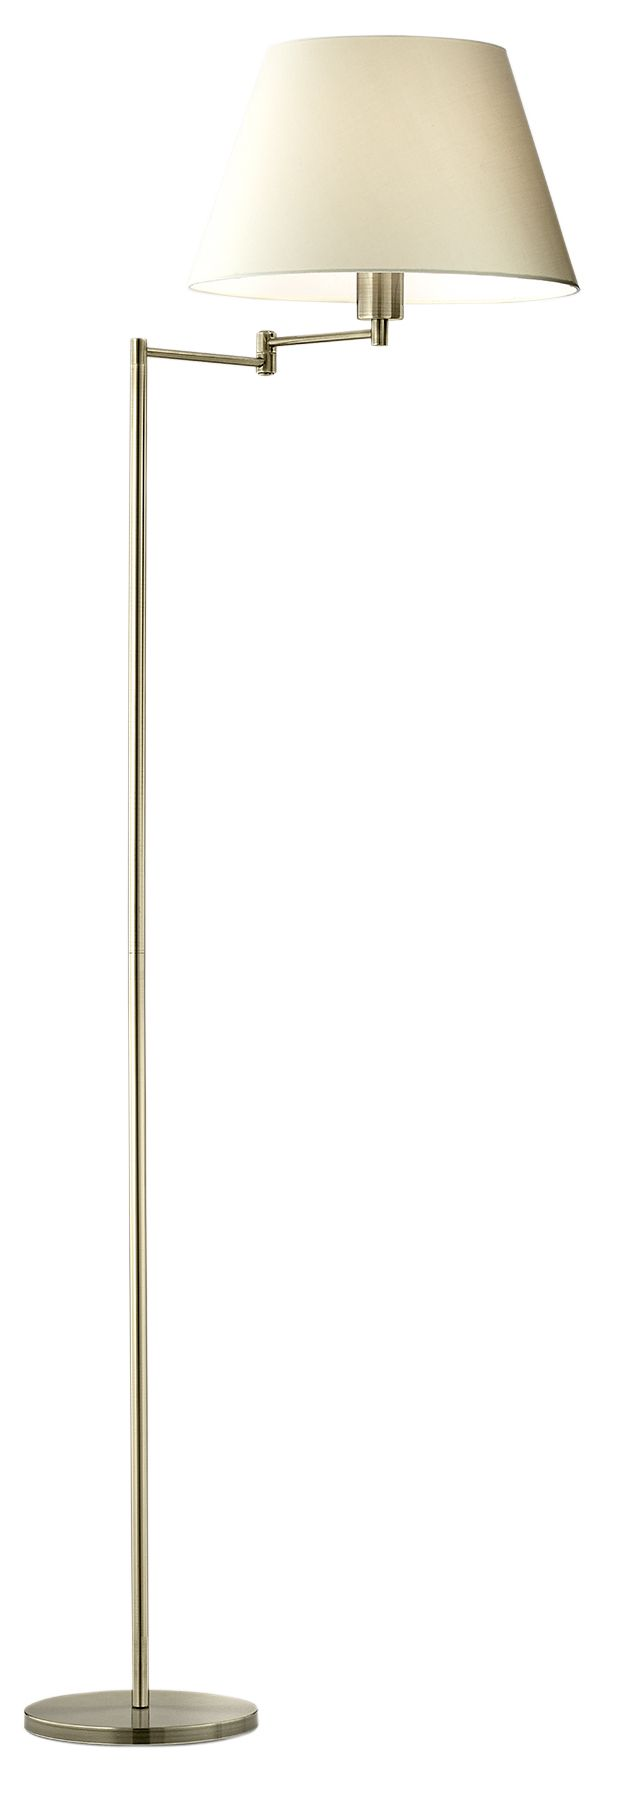 Leamington Gold Effect Incandescent Floor Lamp Departments Diy At B Q